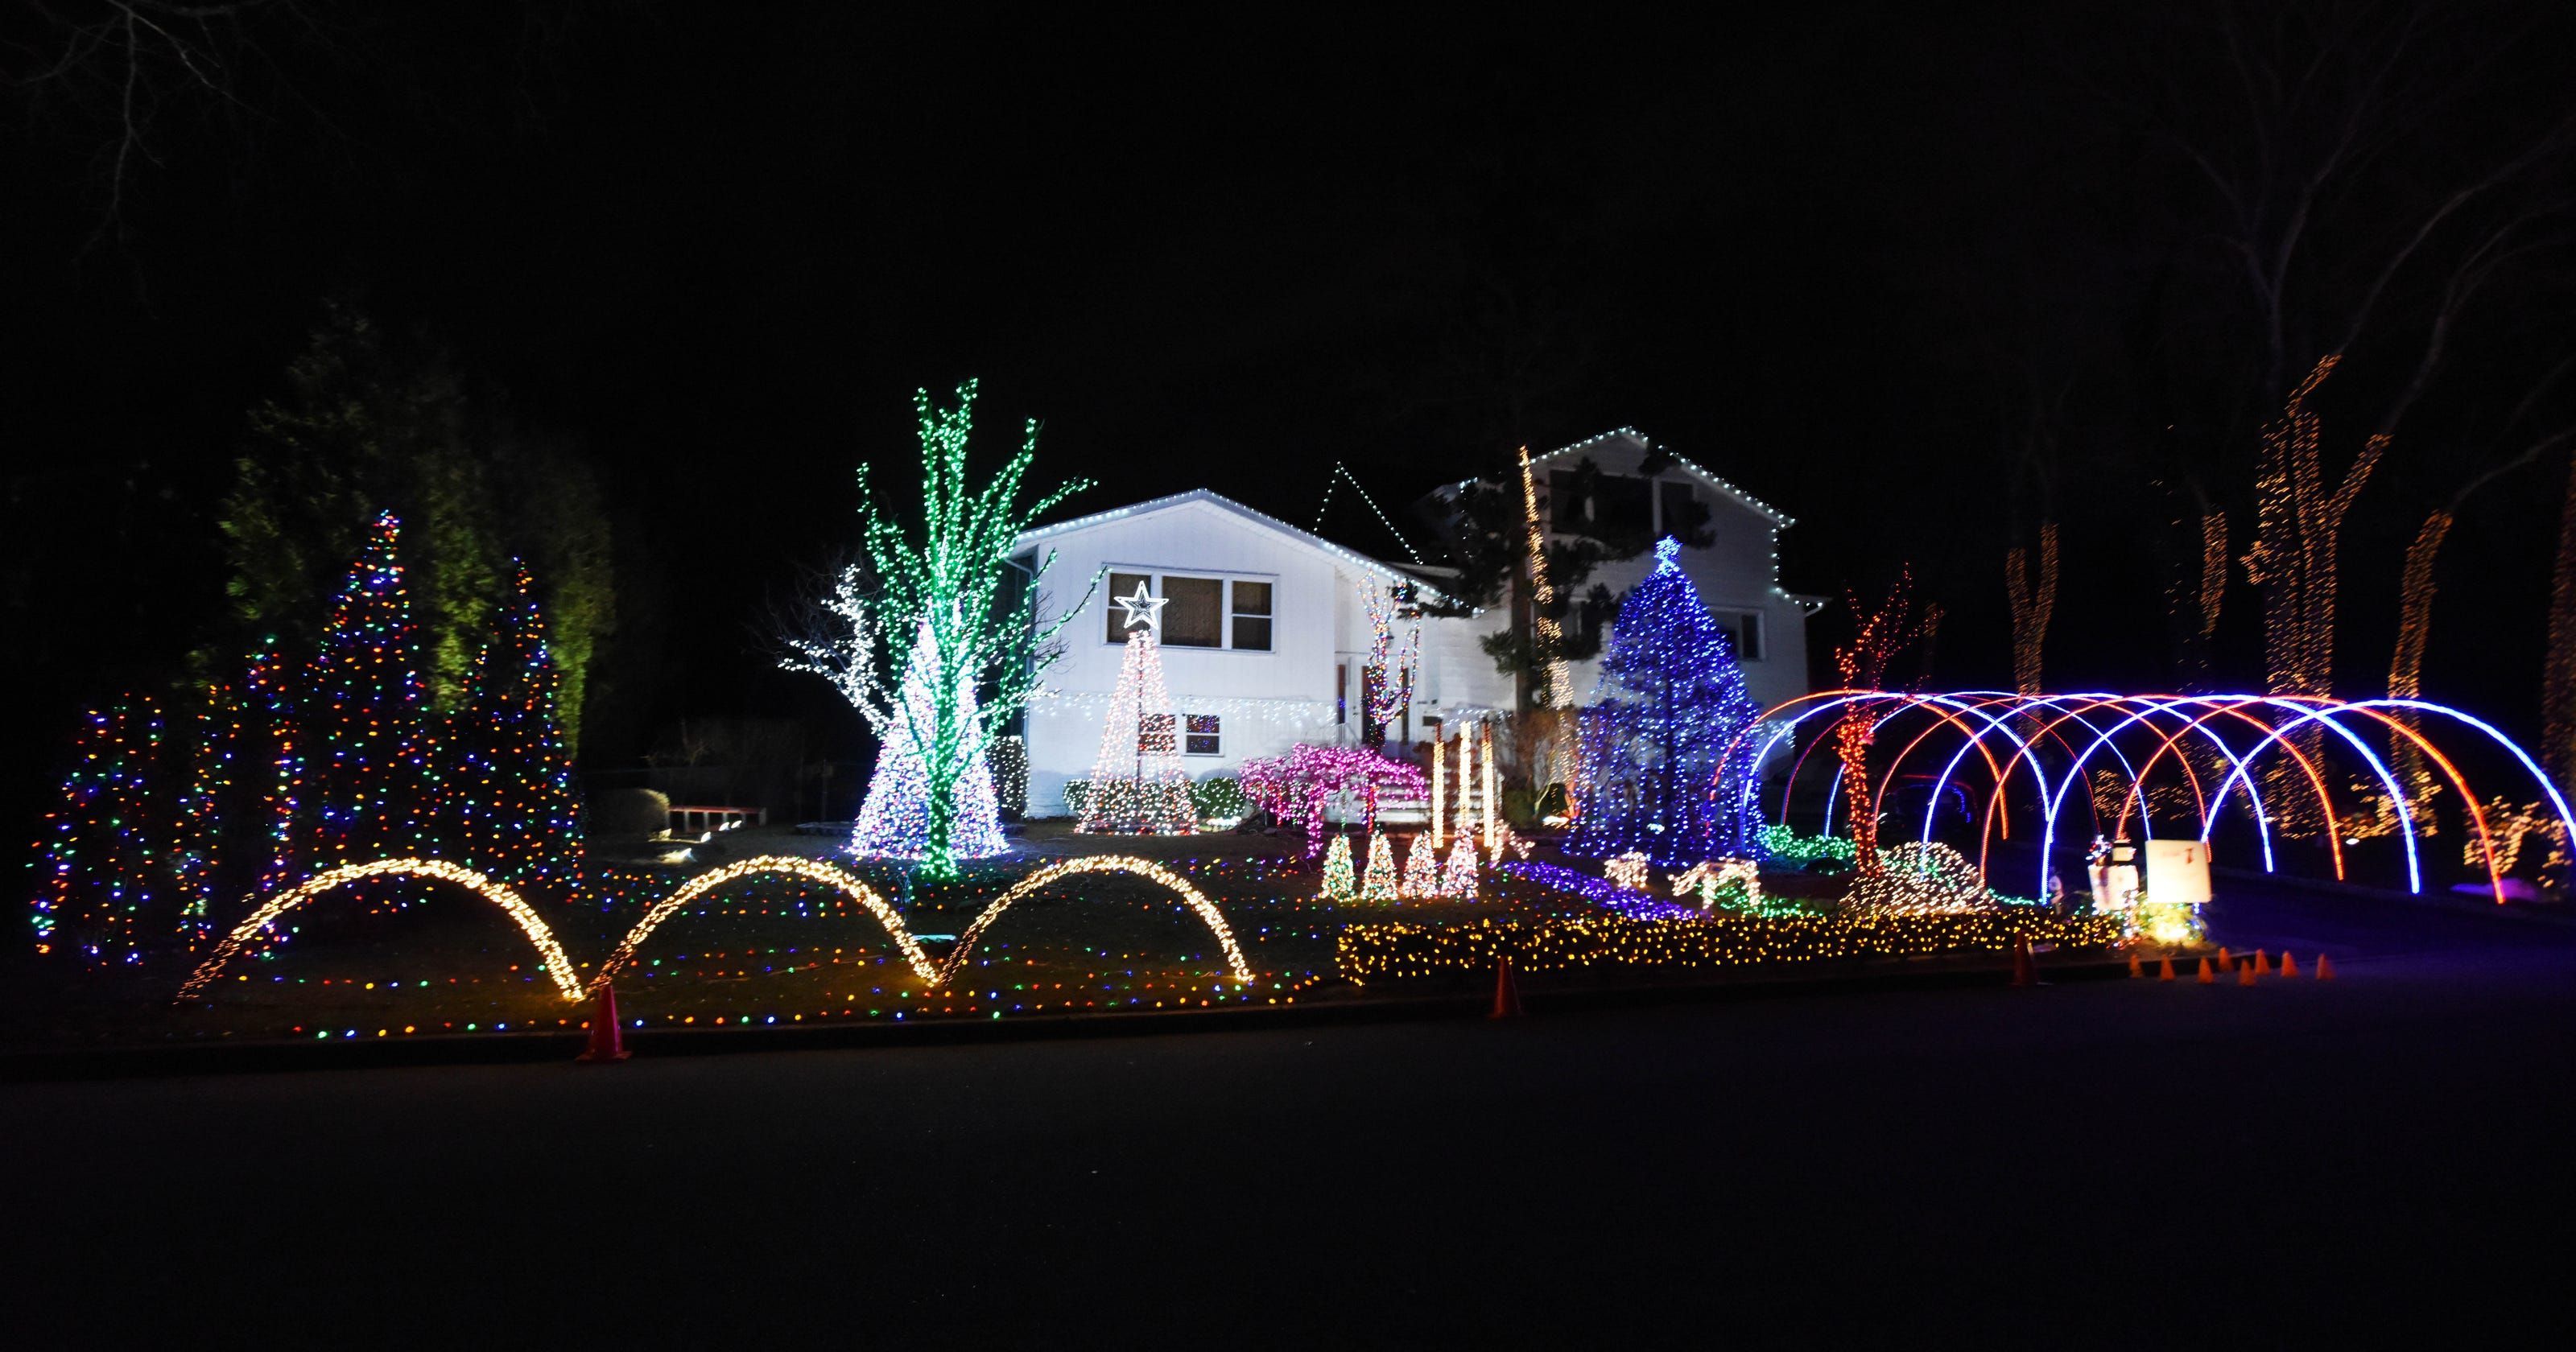 Demarest Christmas display turns tragedy to light